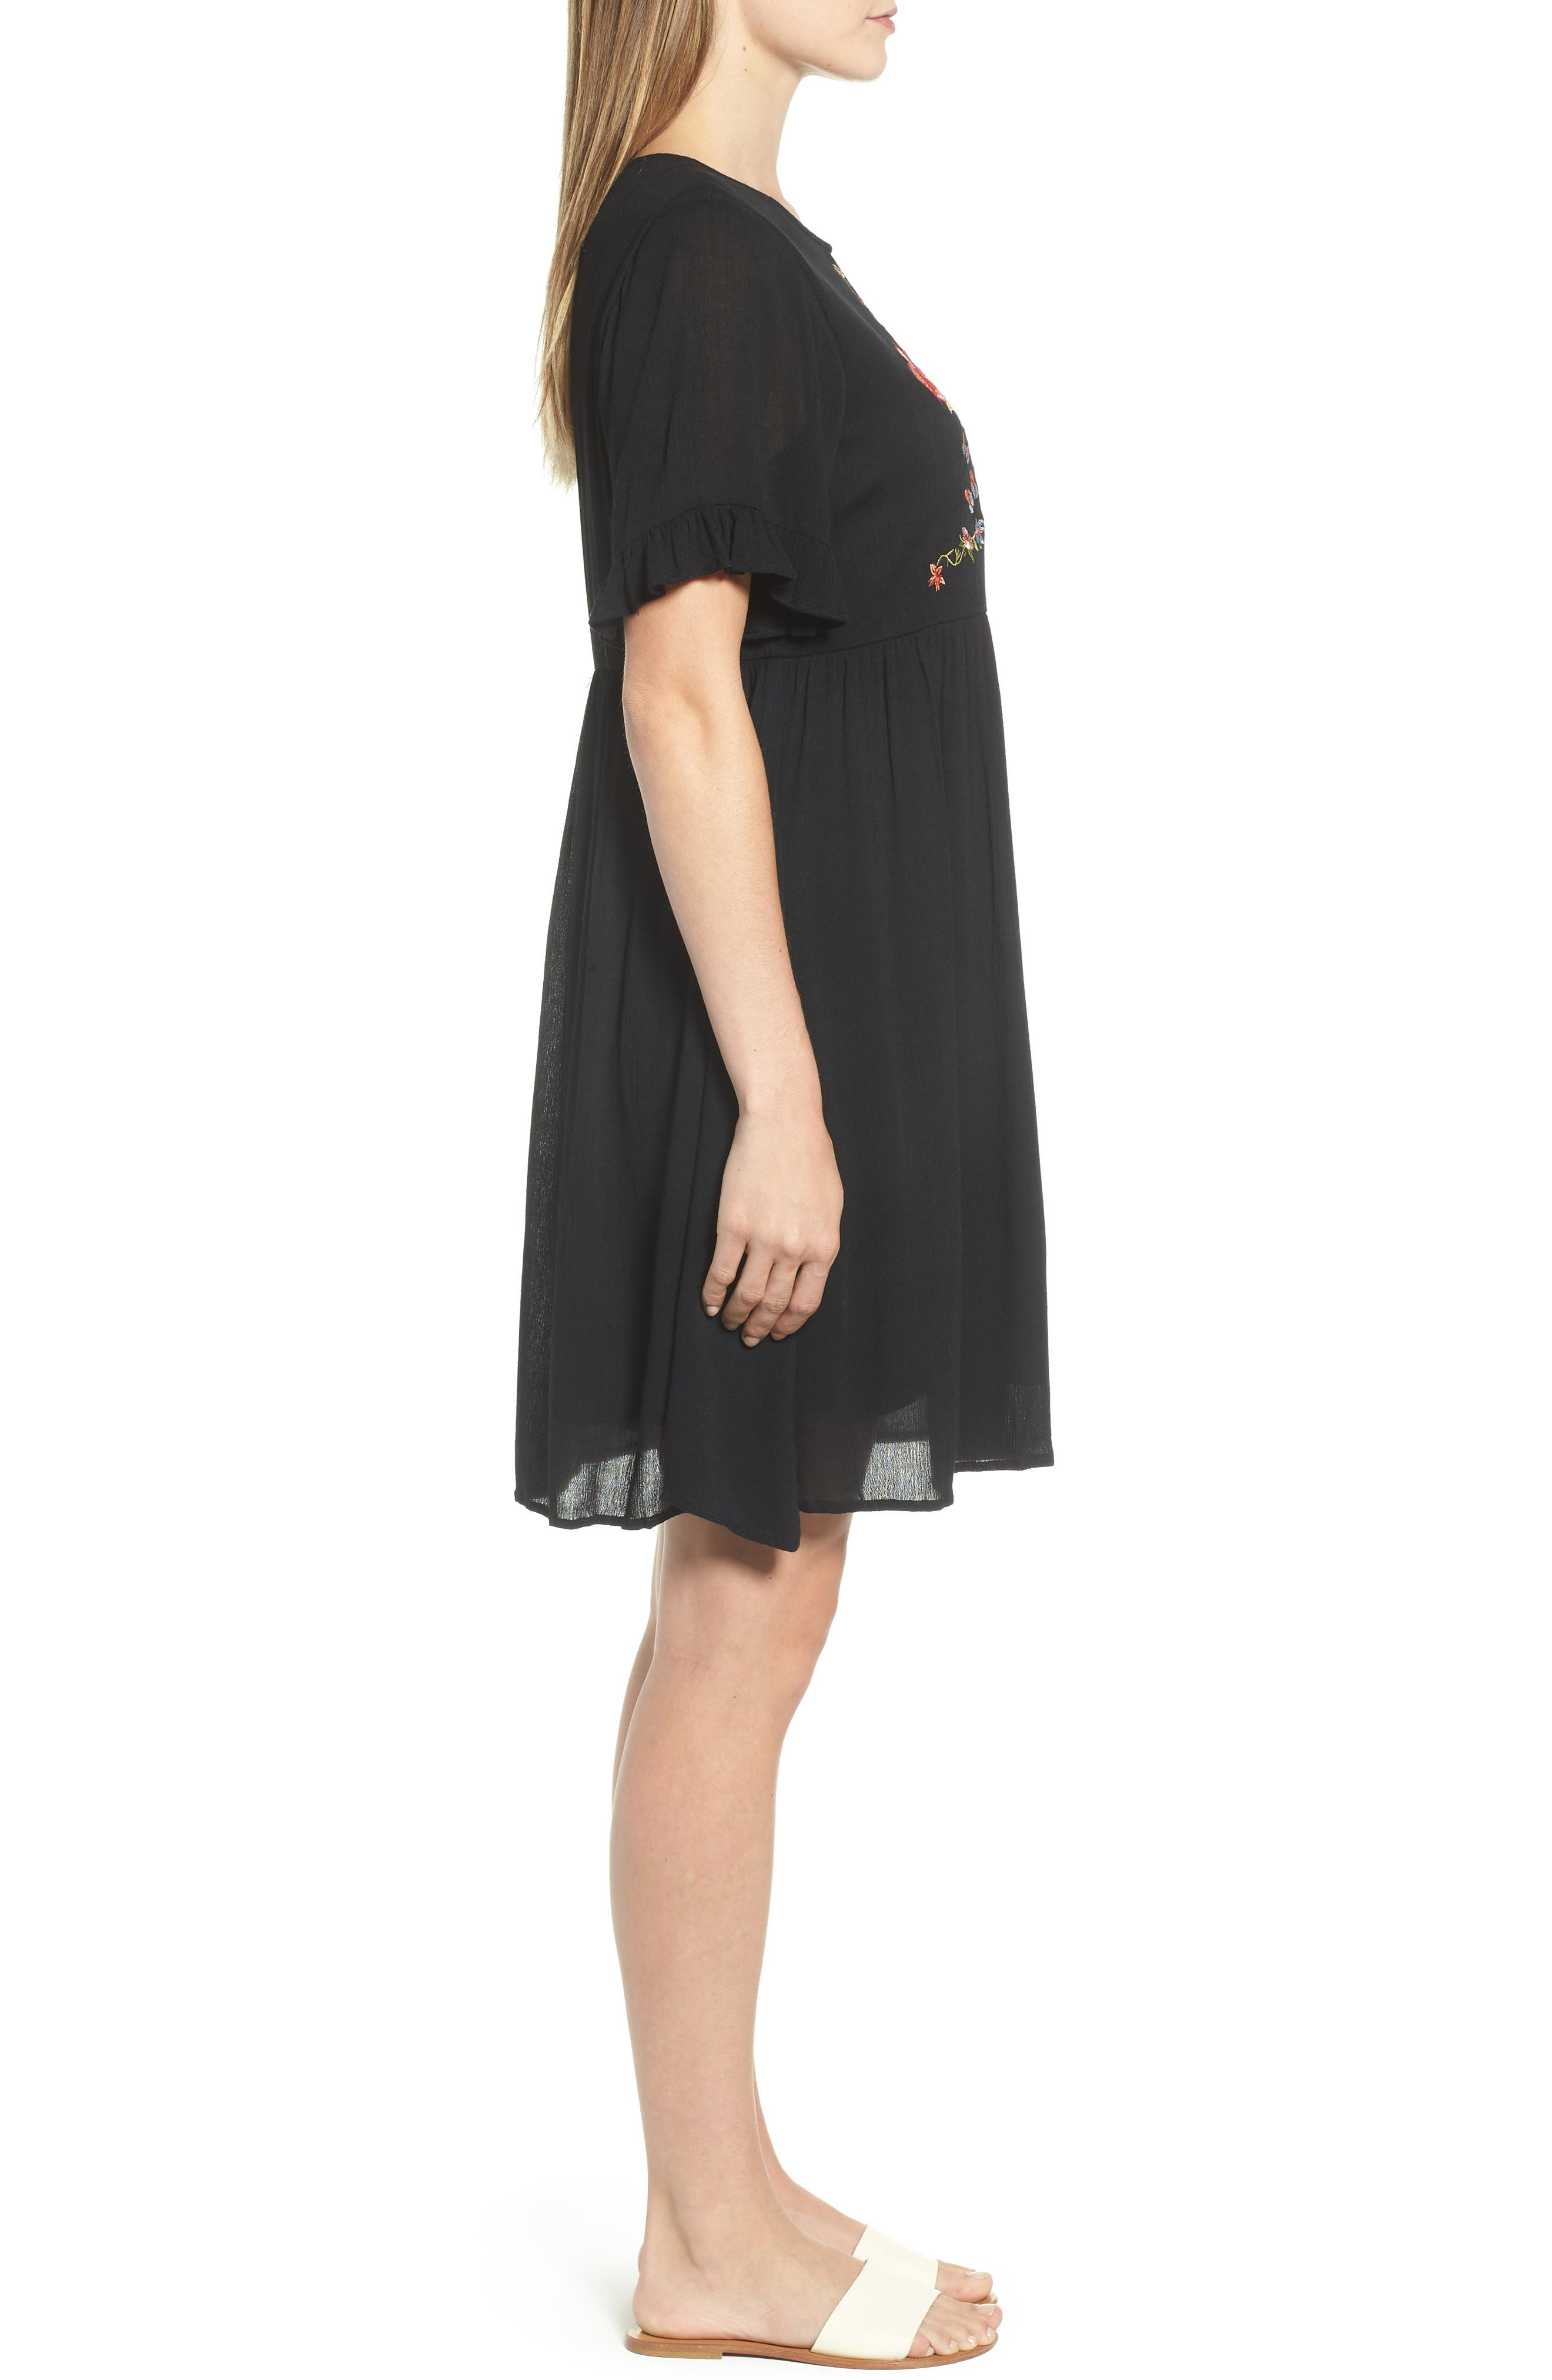 EVERLEIGH,                             Embroidered Dress,                             Alternate thumbnail 3, color,                             001